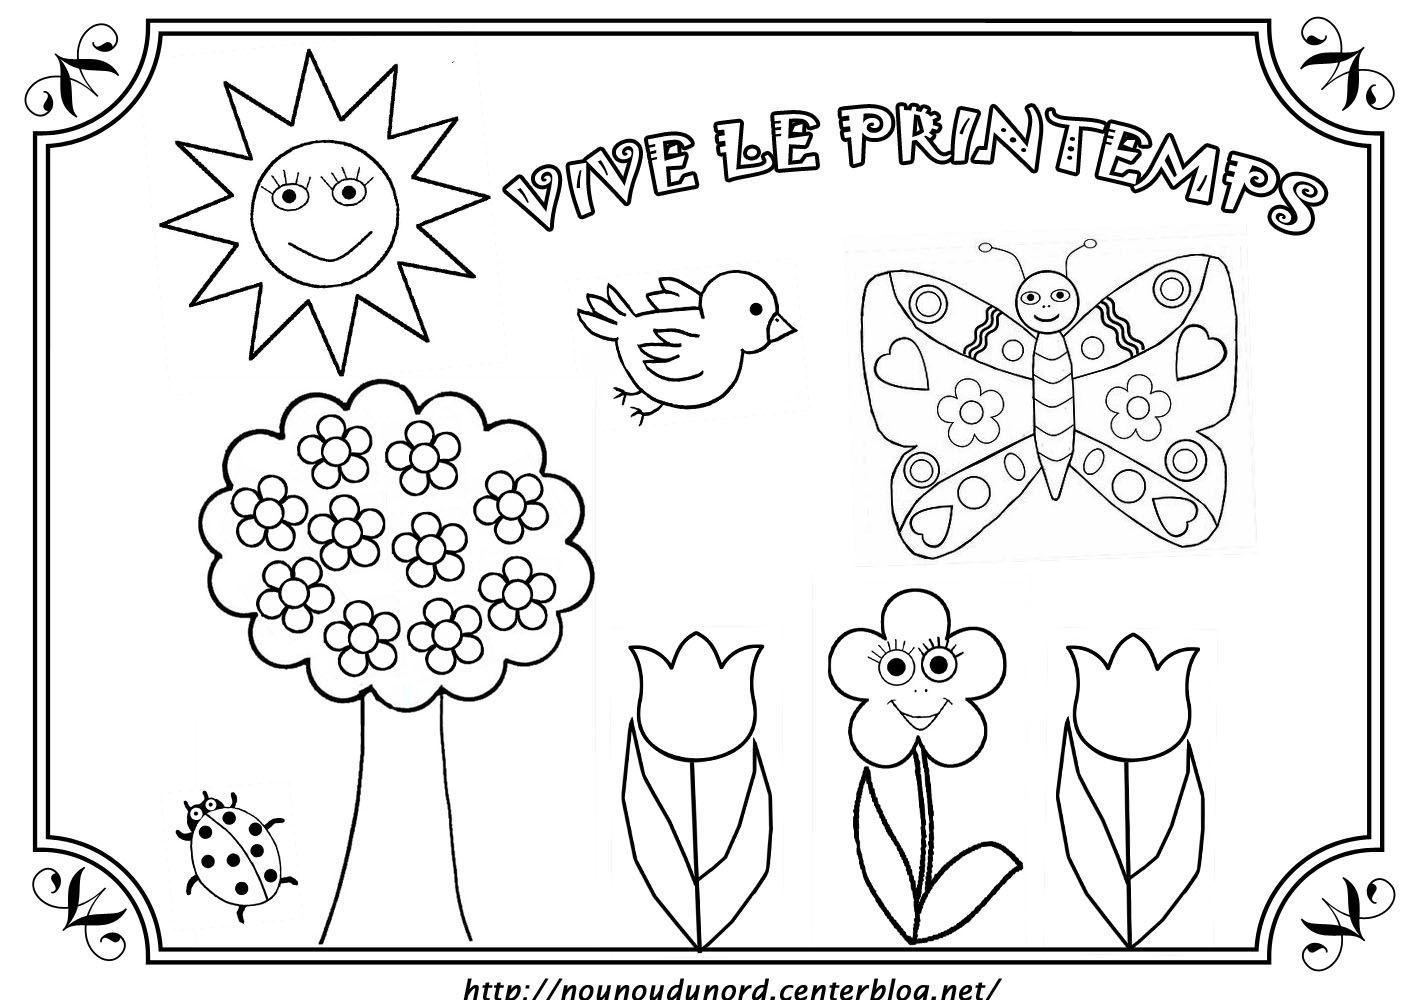 Coloriage Printemps Dessiné Par Nounoudunord